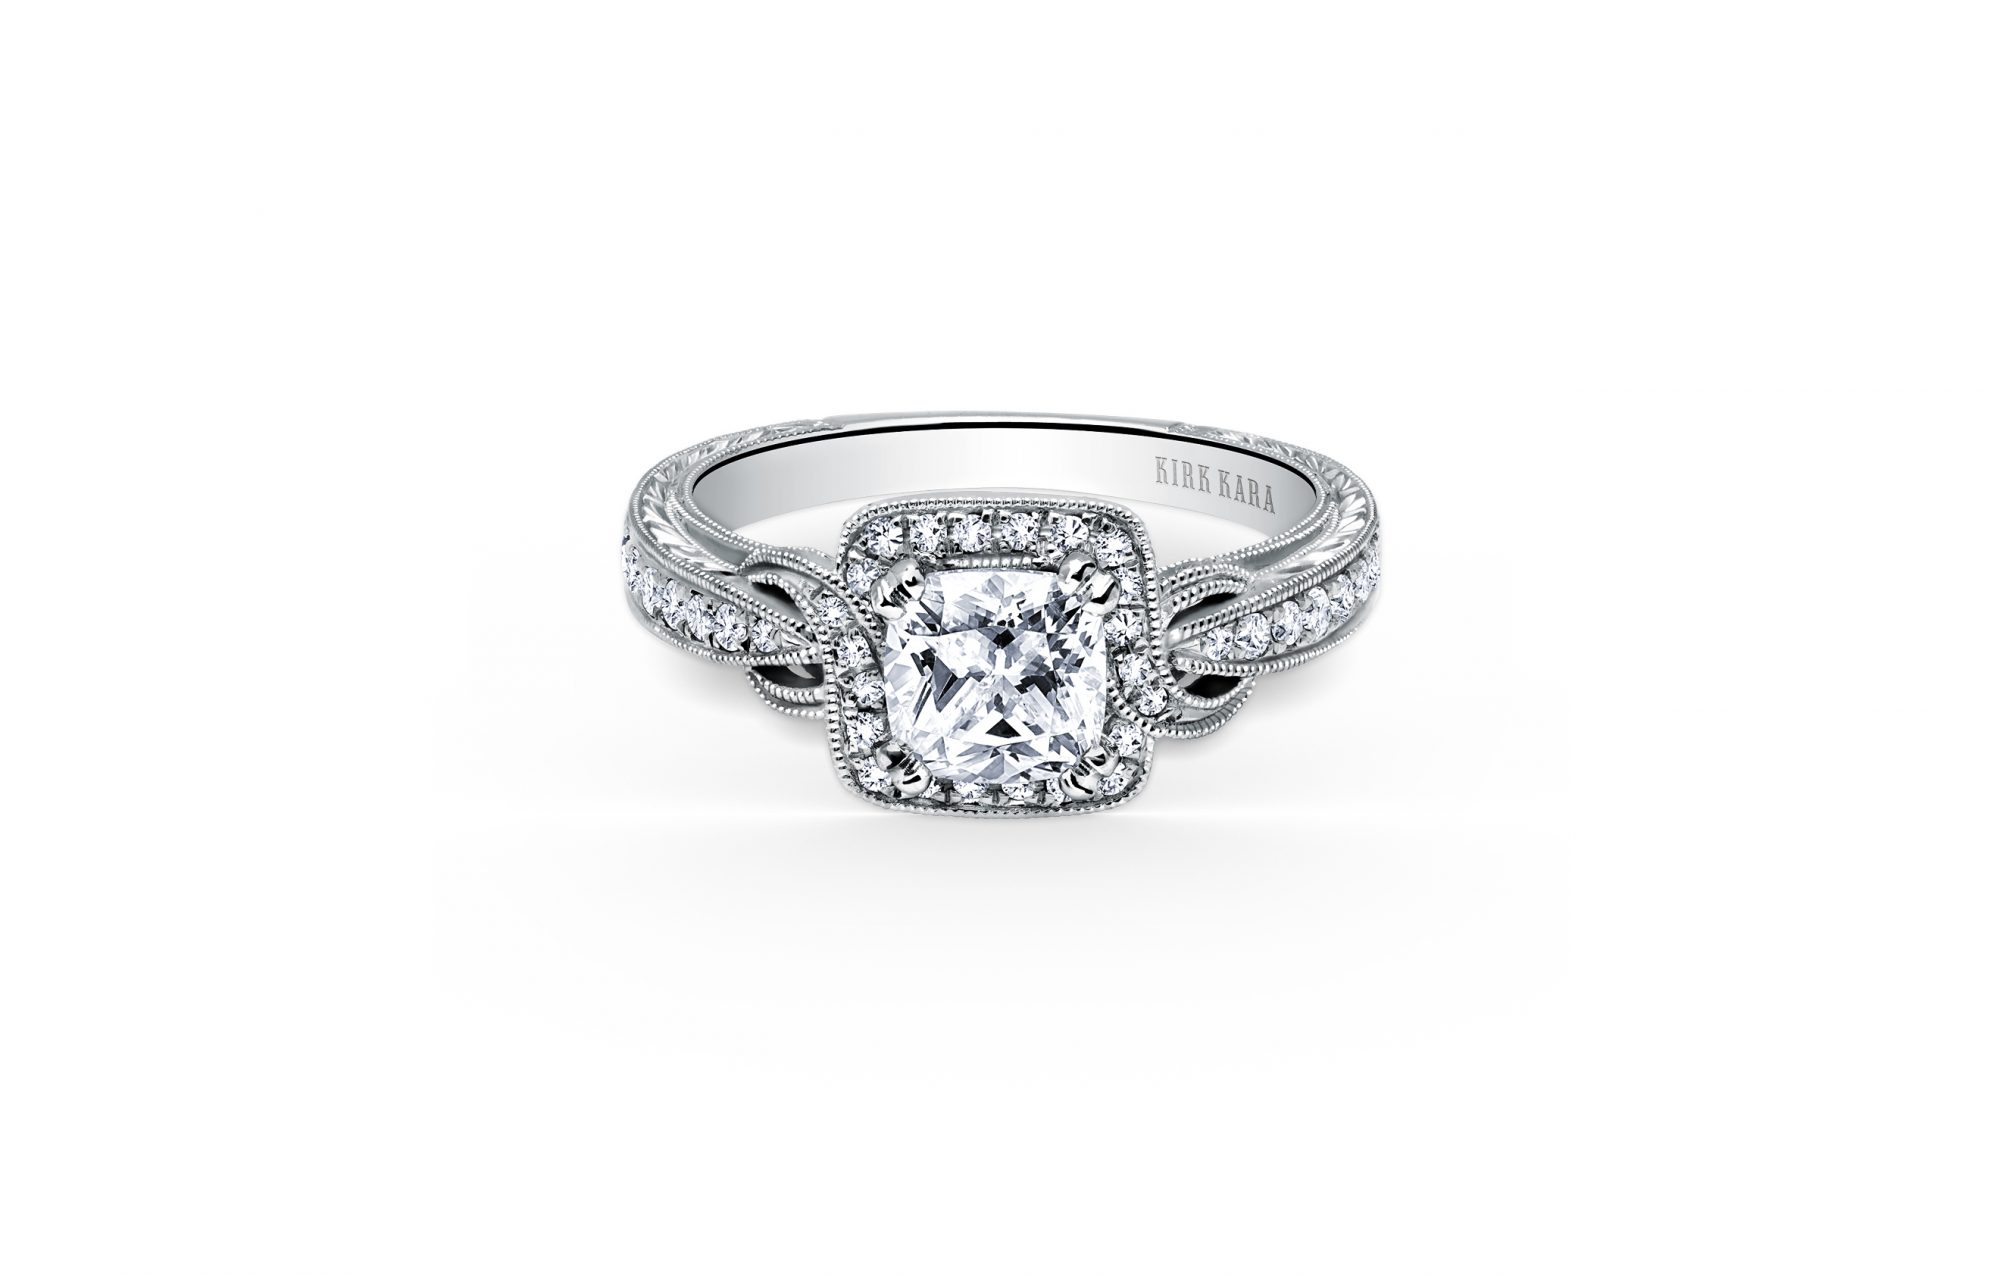 kirk kara cushion cut diamond engagement ring pirouette style